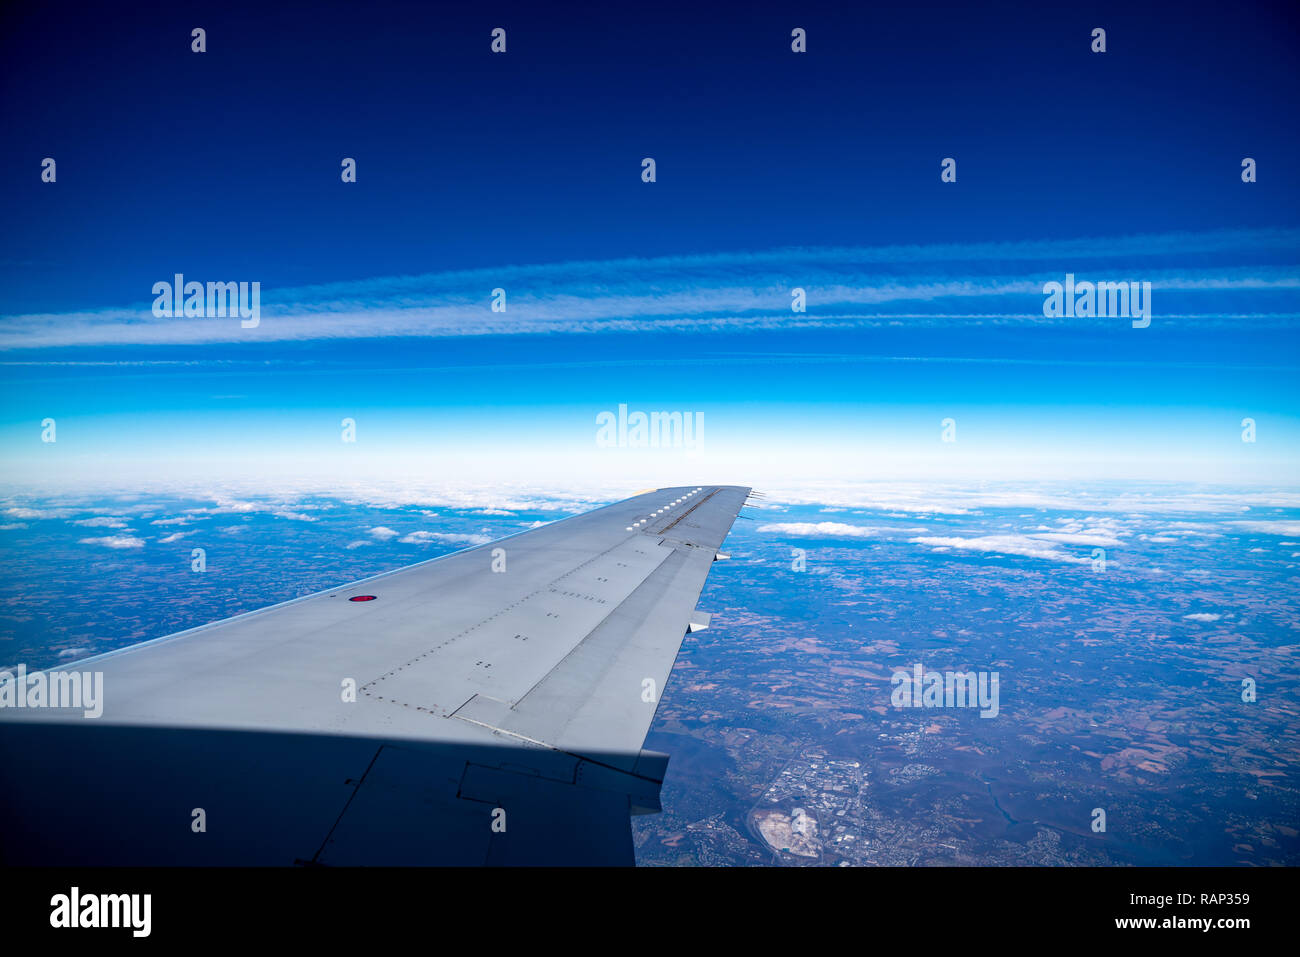 New York, USA,  29DEC2018 - The wing of an Embraer ERJ-135 twin-jet is seen against the sky as it flyes over Virginia.  Photo by Enrique Shore - Stock Image